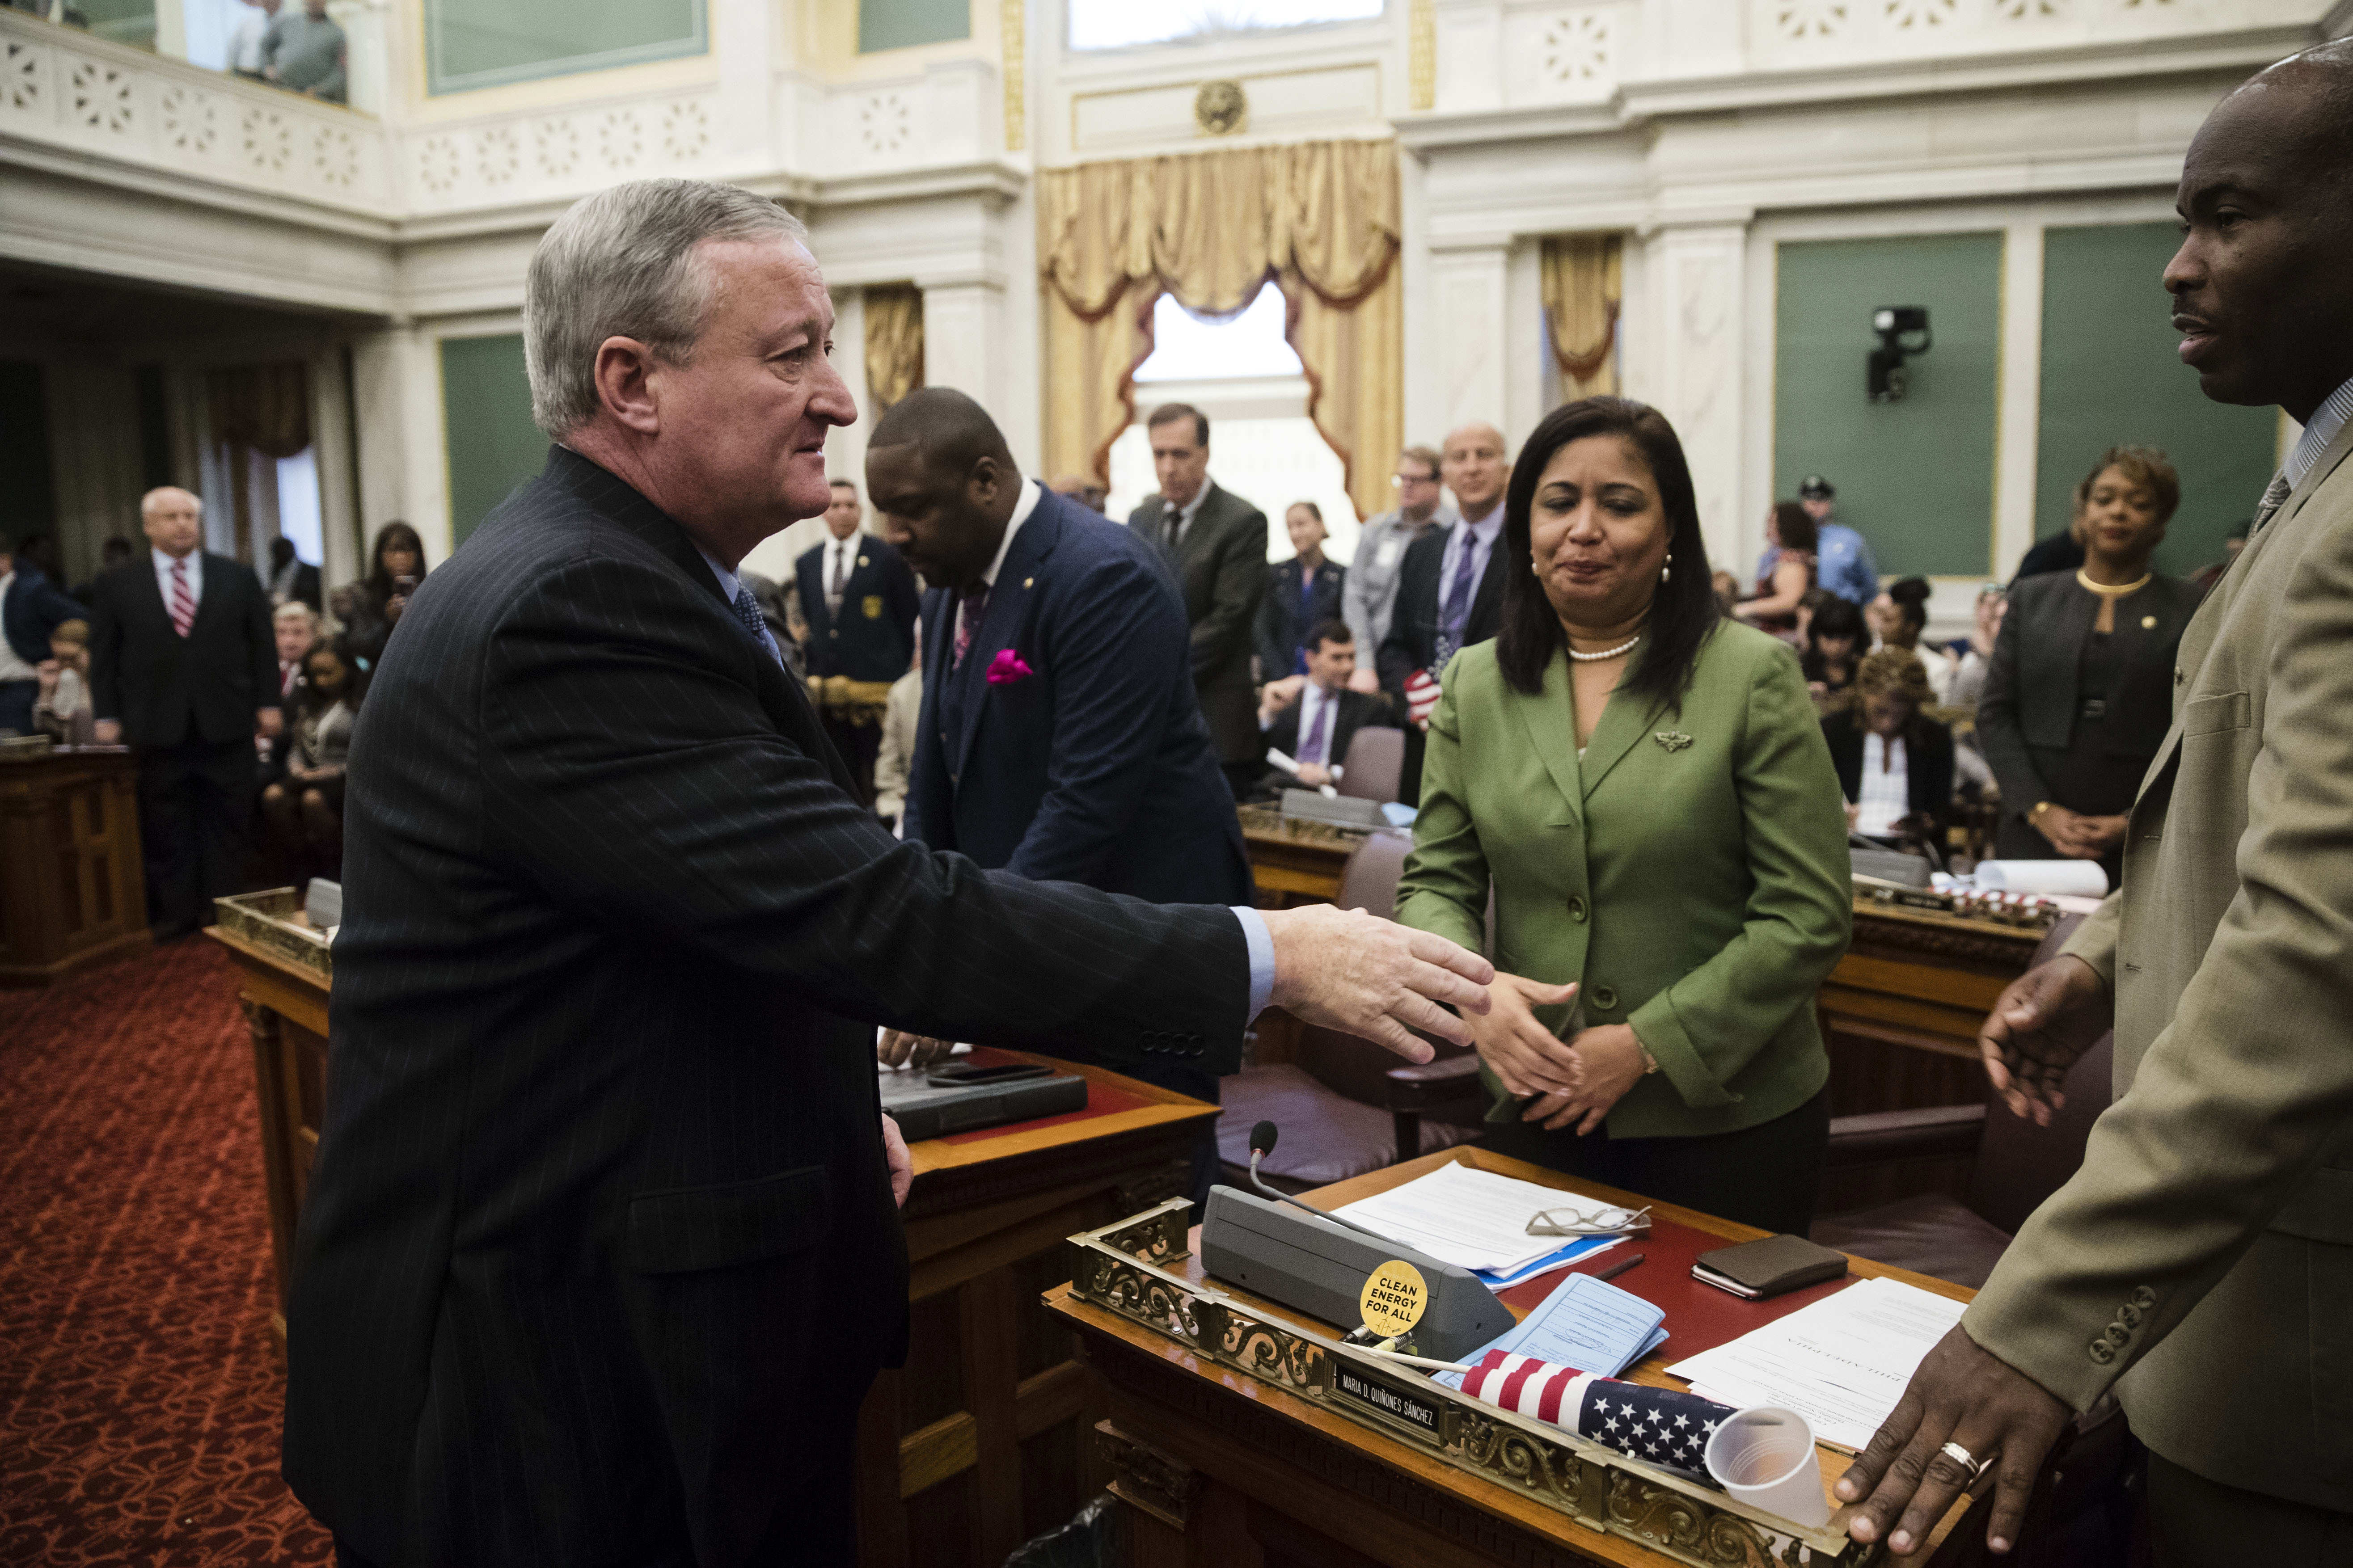 Philadelphia Mayor Jim Kenney, left, shakes hands with members of City Council at City Hall on Nov. 2, 2017. (AP Photo/Matt Rourke)